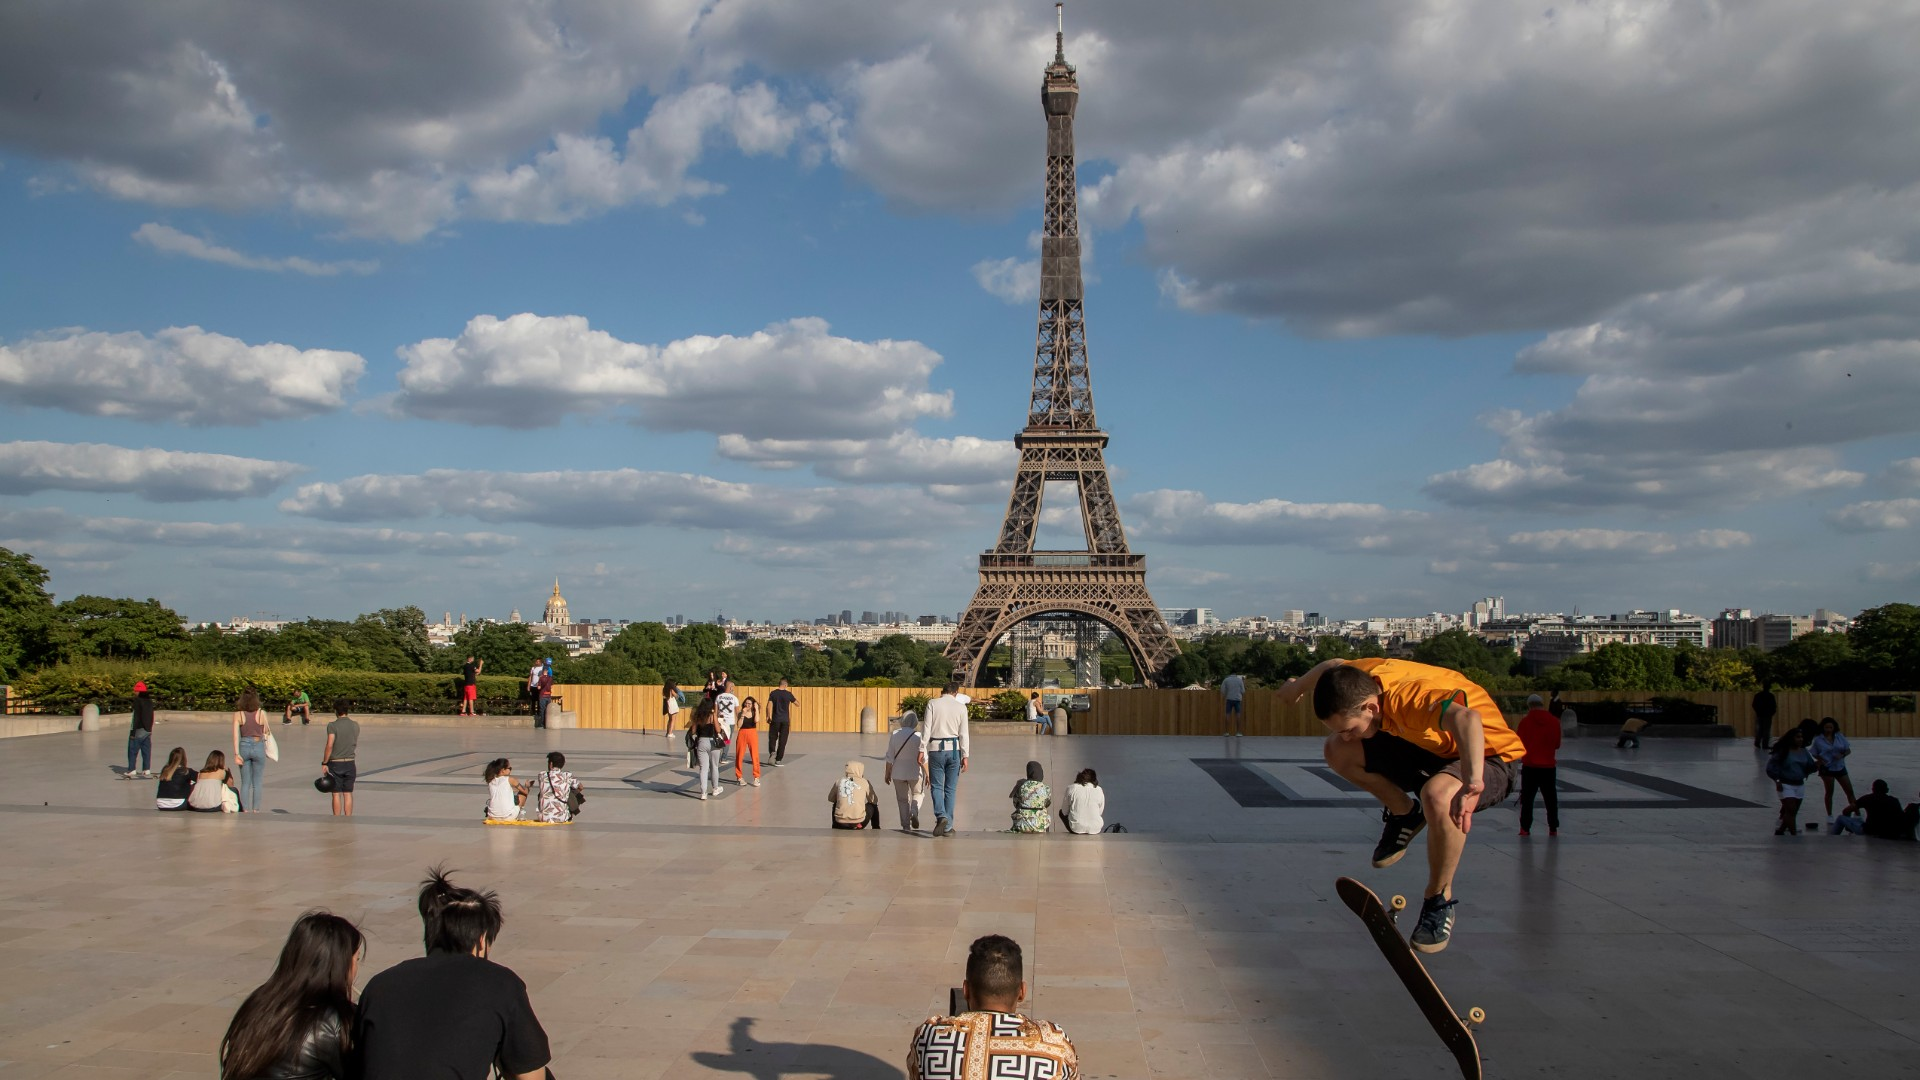 In this Monday, May 25, 2020 file photo, people stroll at Trocadero square near the Eiffel Tower in Paris. (AP Photo/Michel Euler, File)